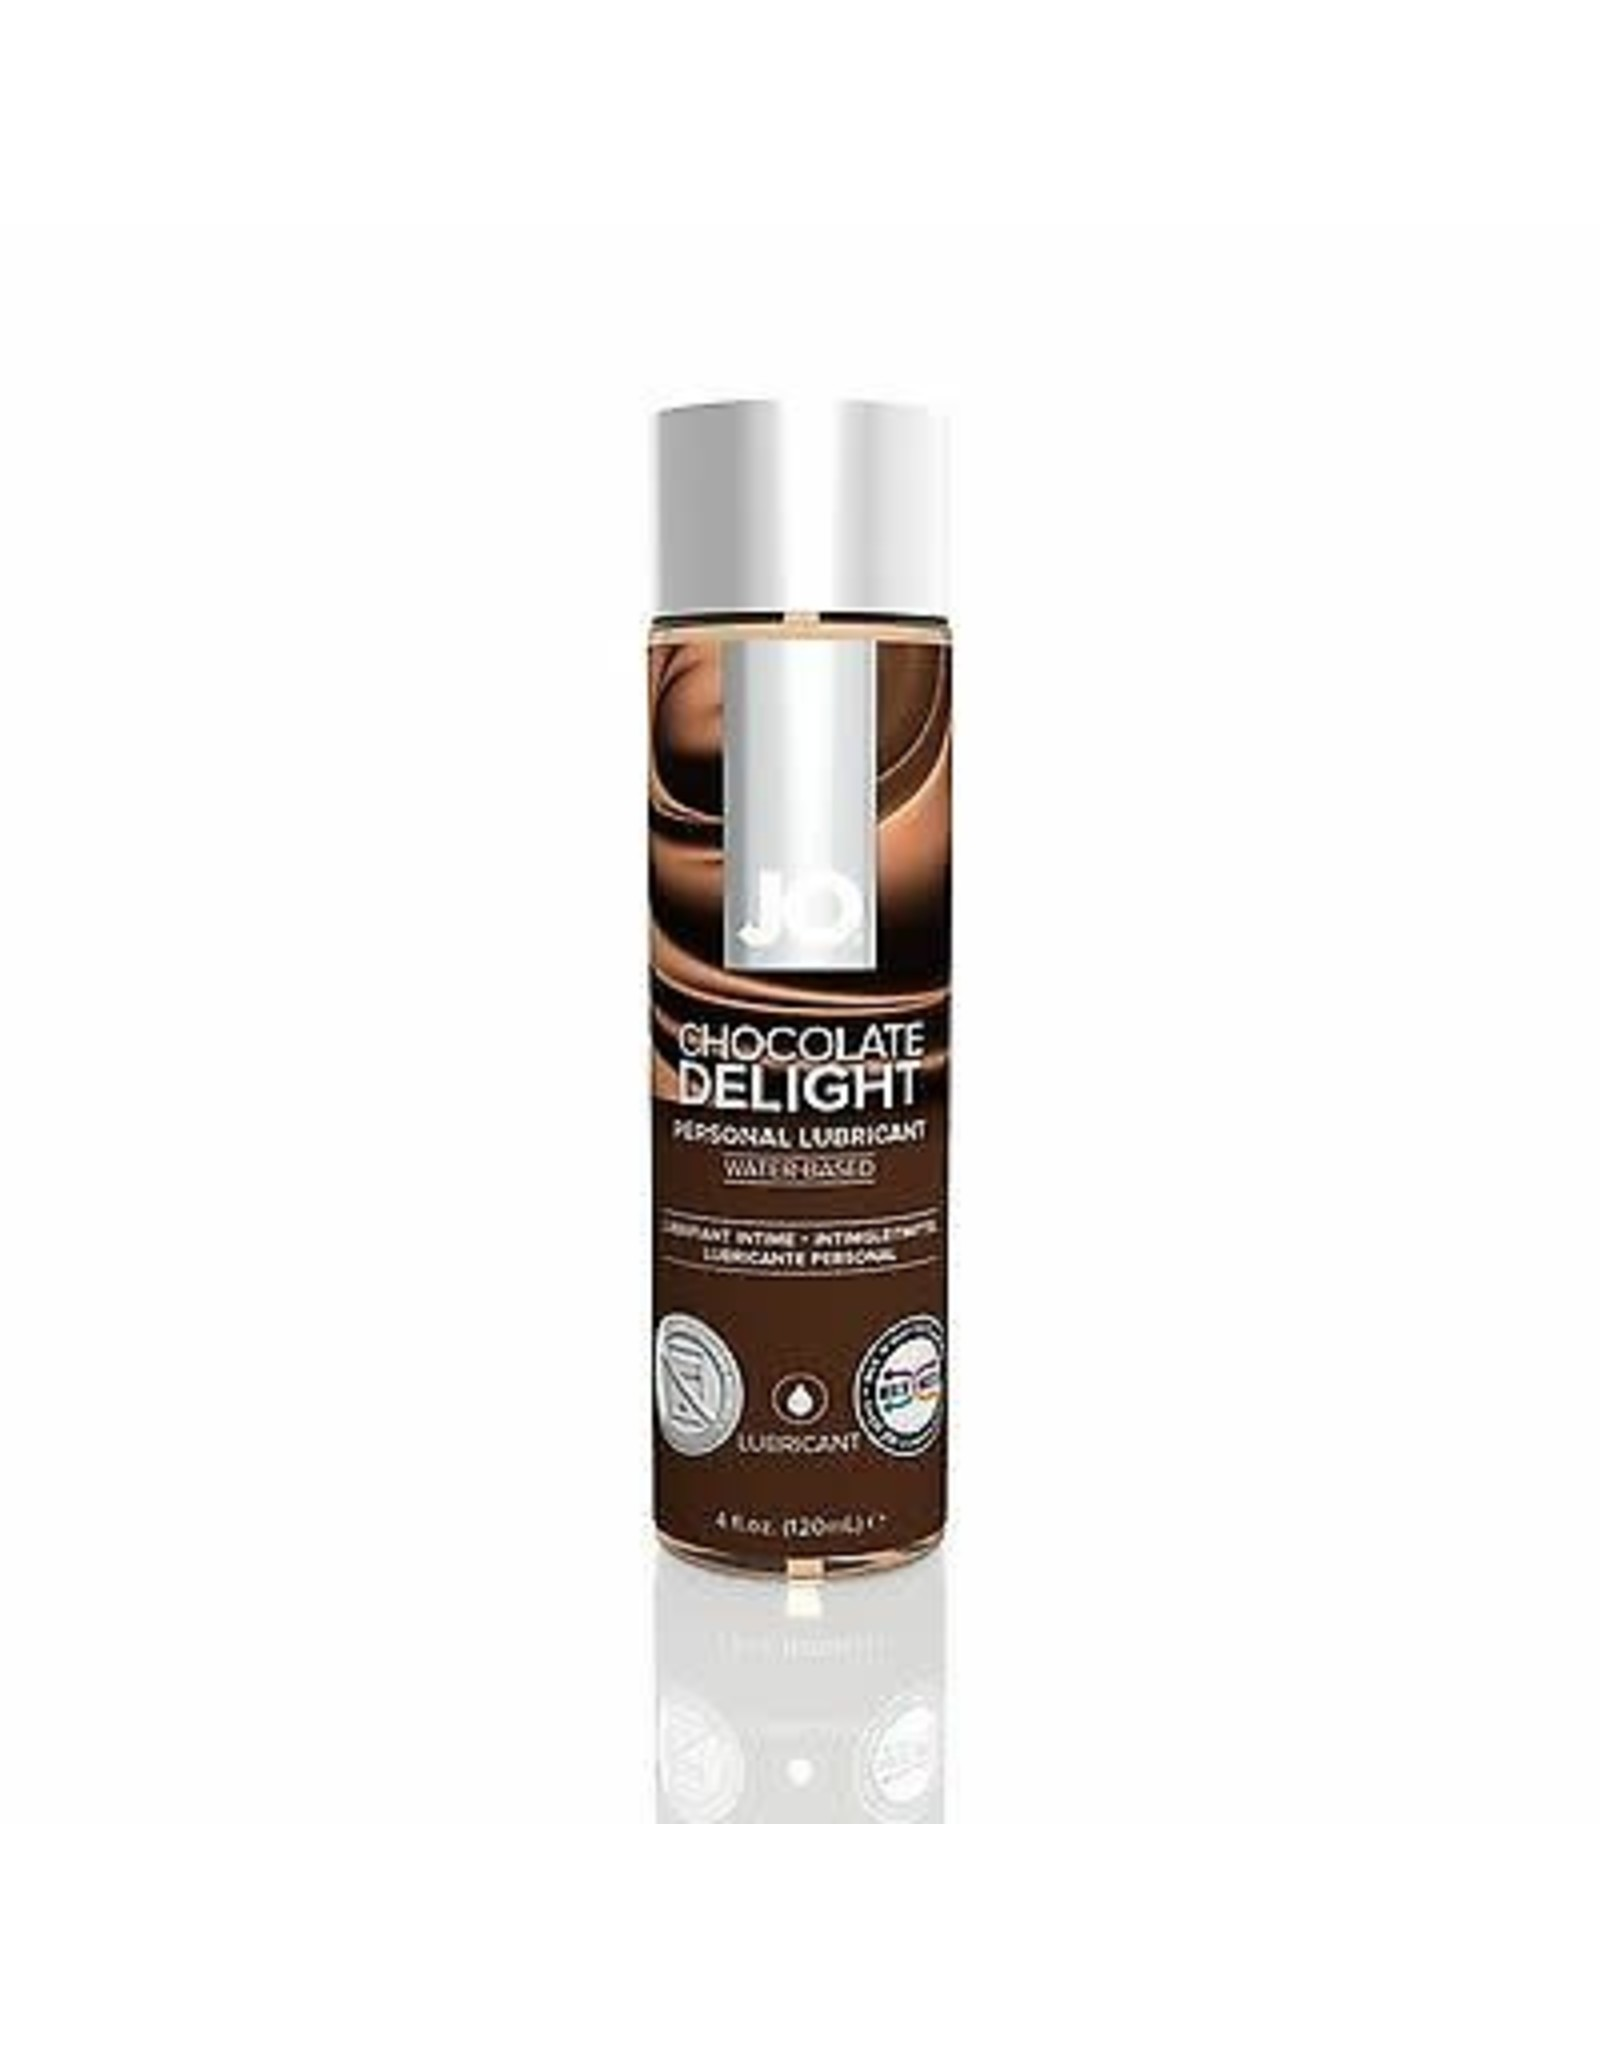 JO - H2O - FLAVOURED LUBRICANT - CHOCOLATE DELIGHT - 4 oz